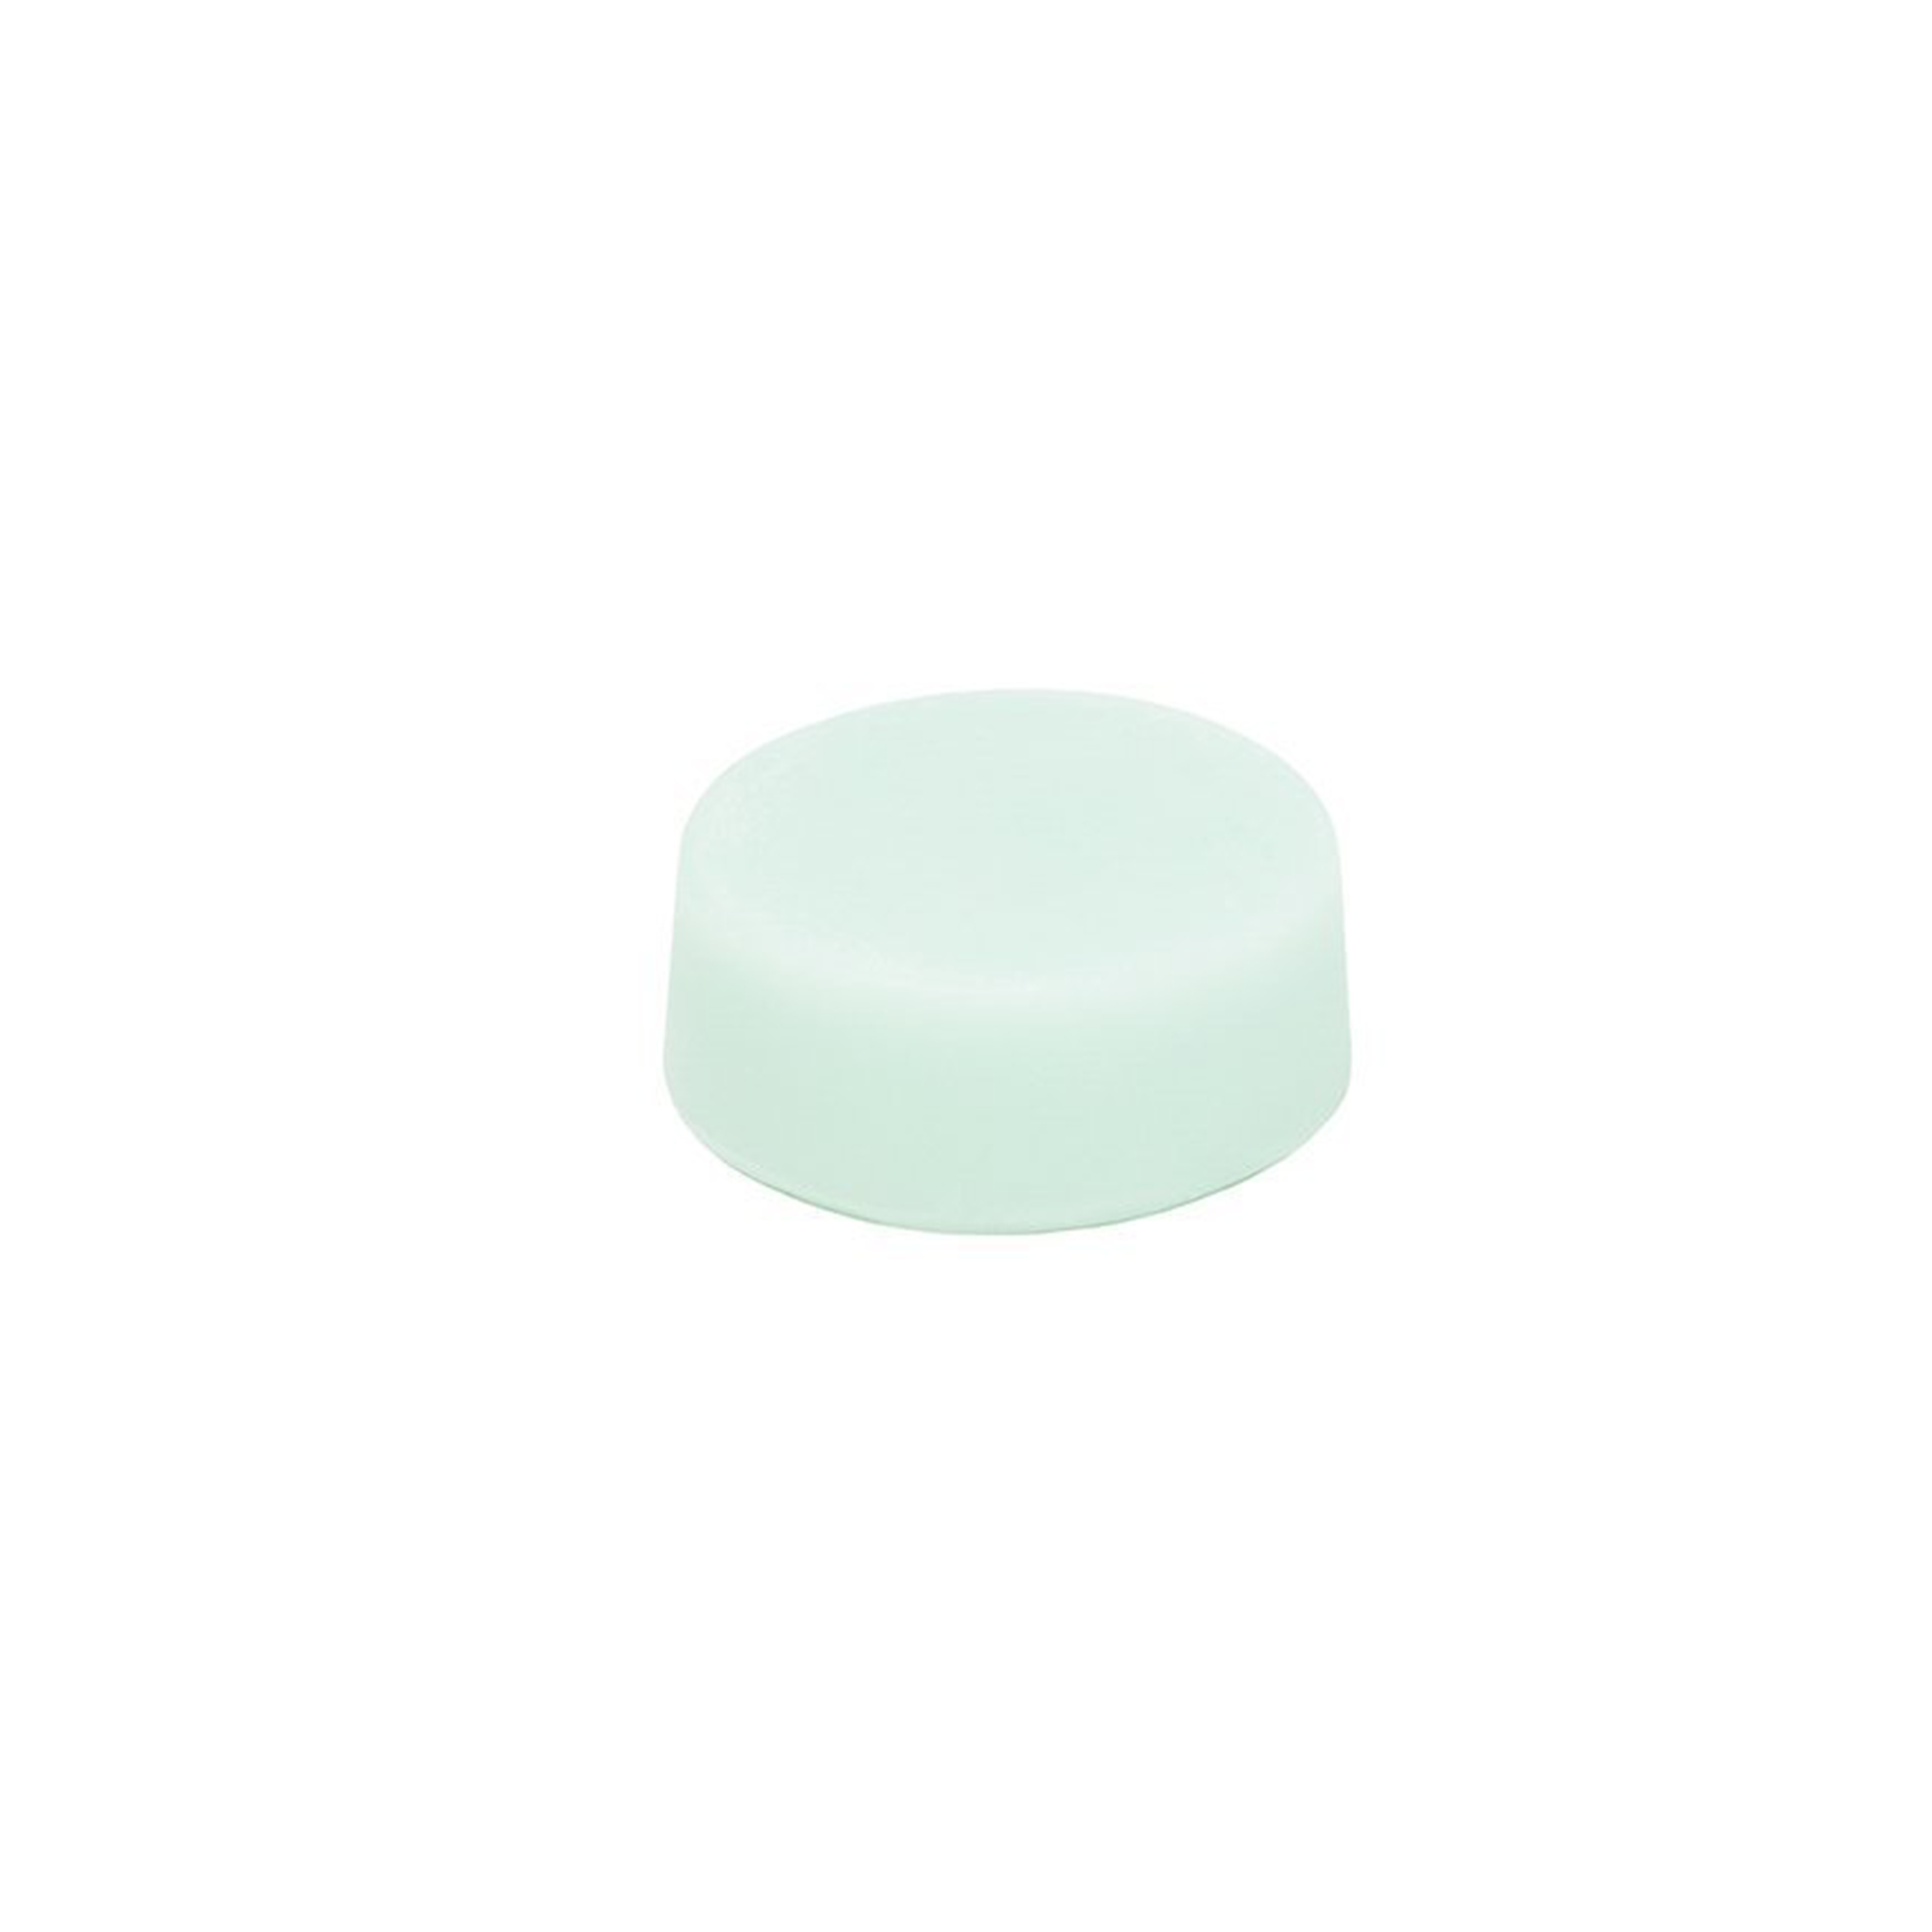 Light teal solid conditioner bar on white background.